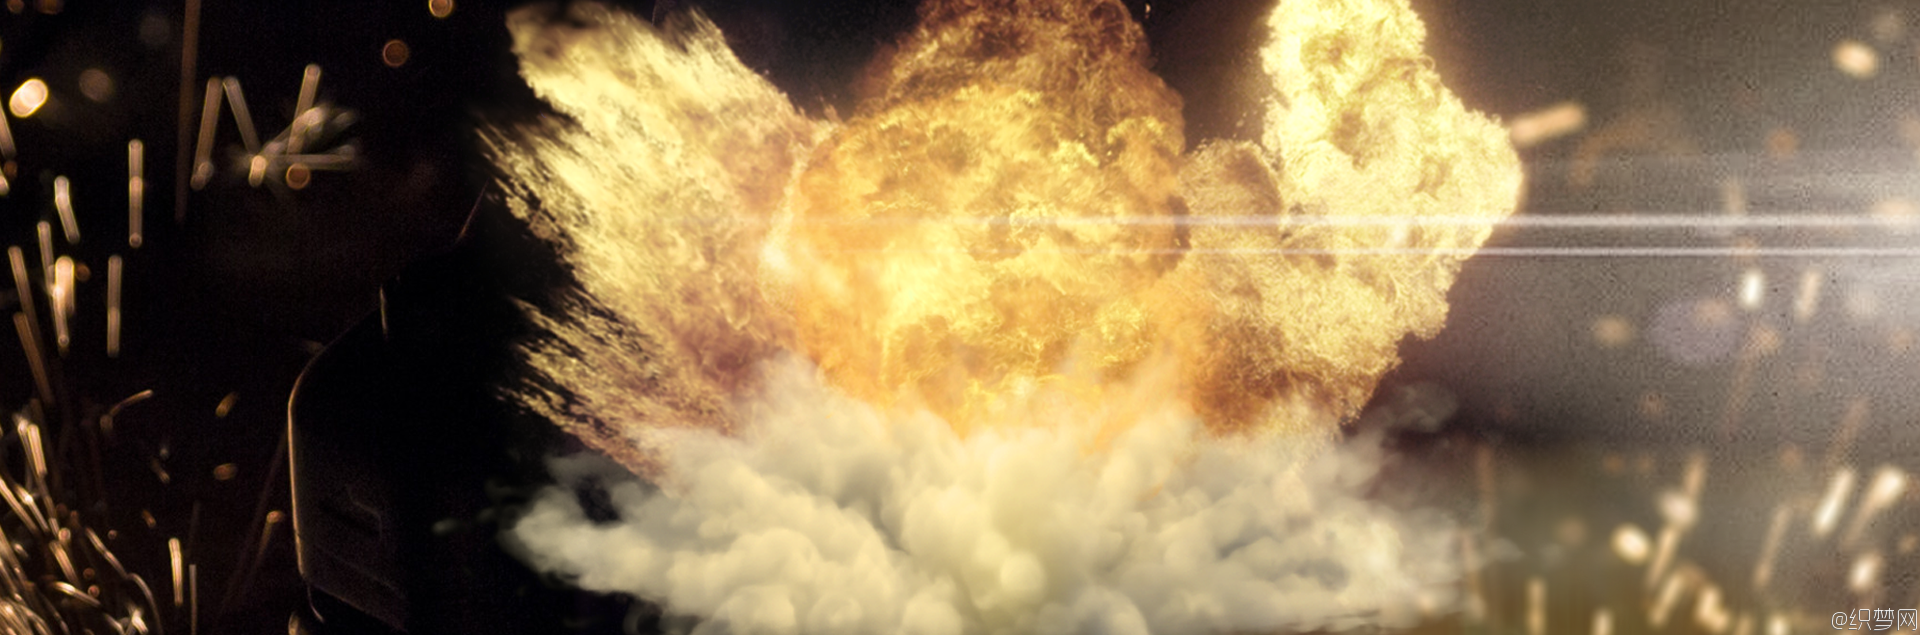 4K���屬ը��Ч��Ƶ�ز� - Combust 4K Fire Explosions Pack - VfxCentral